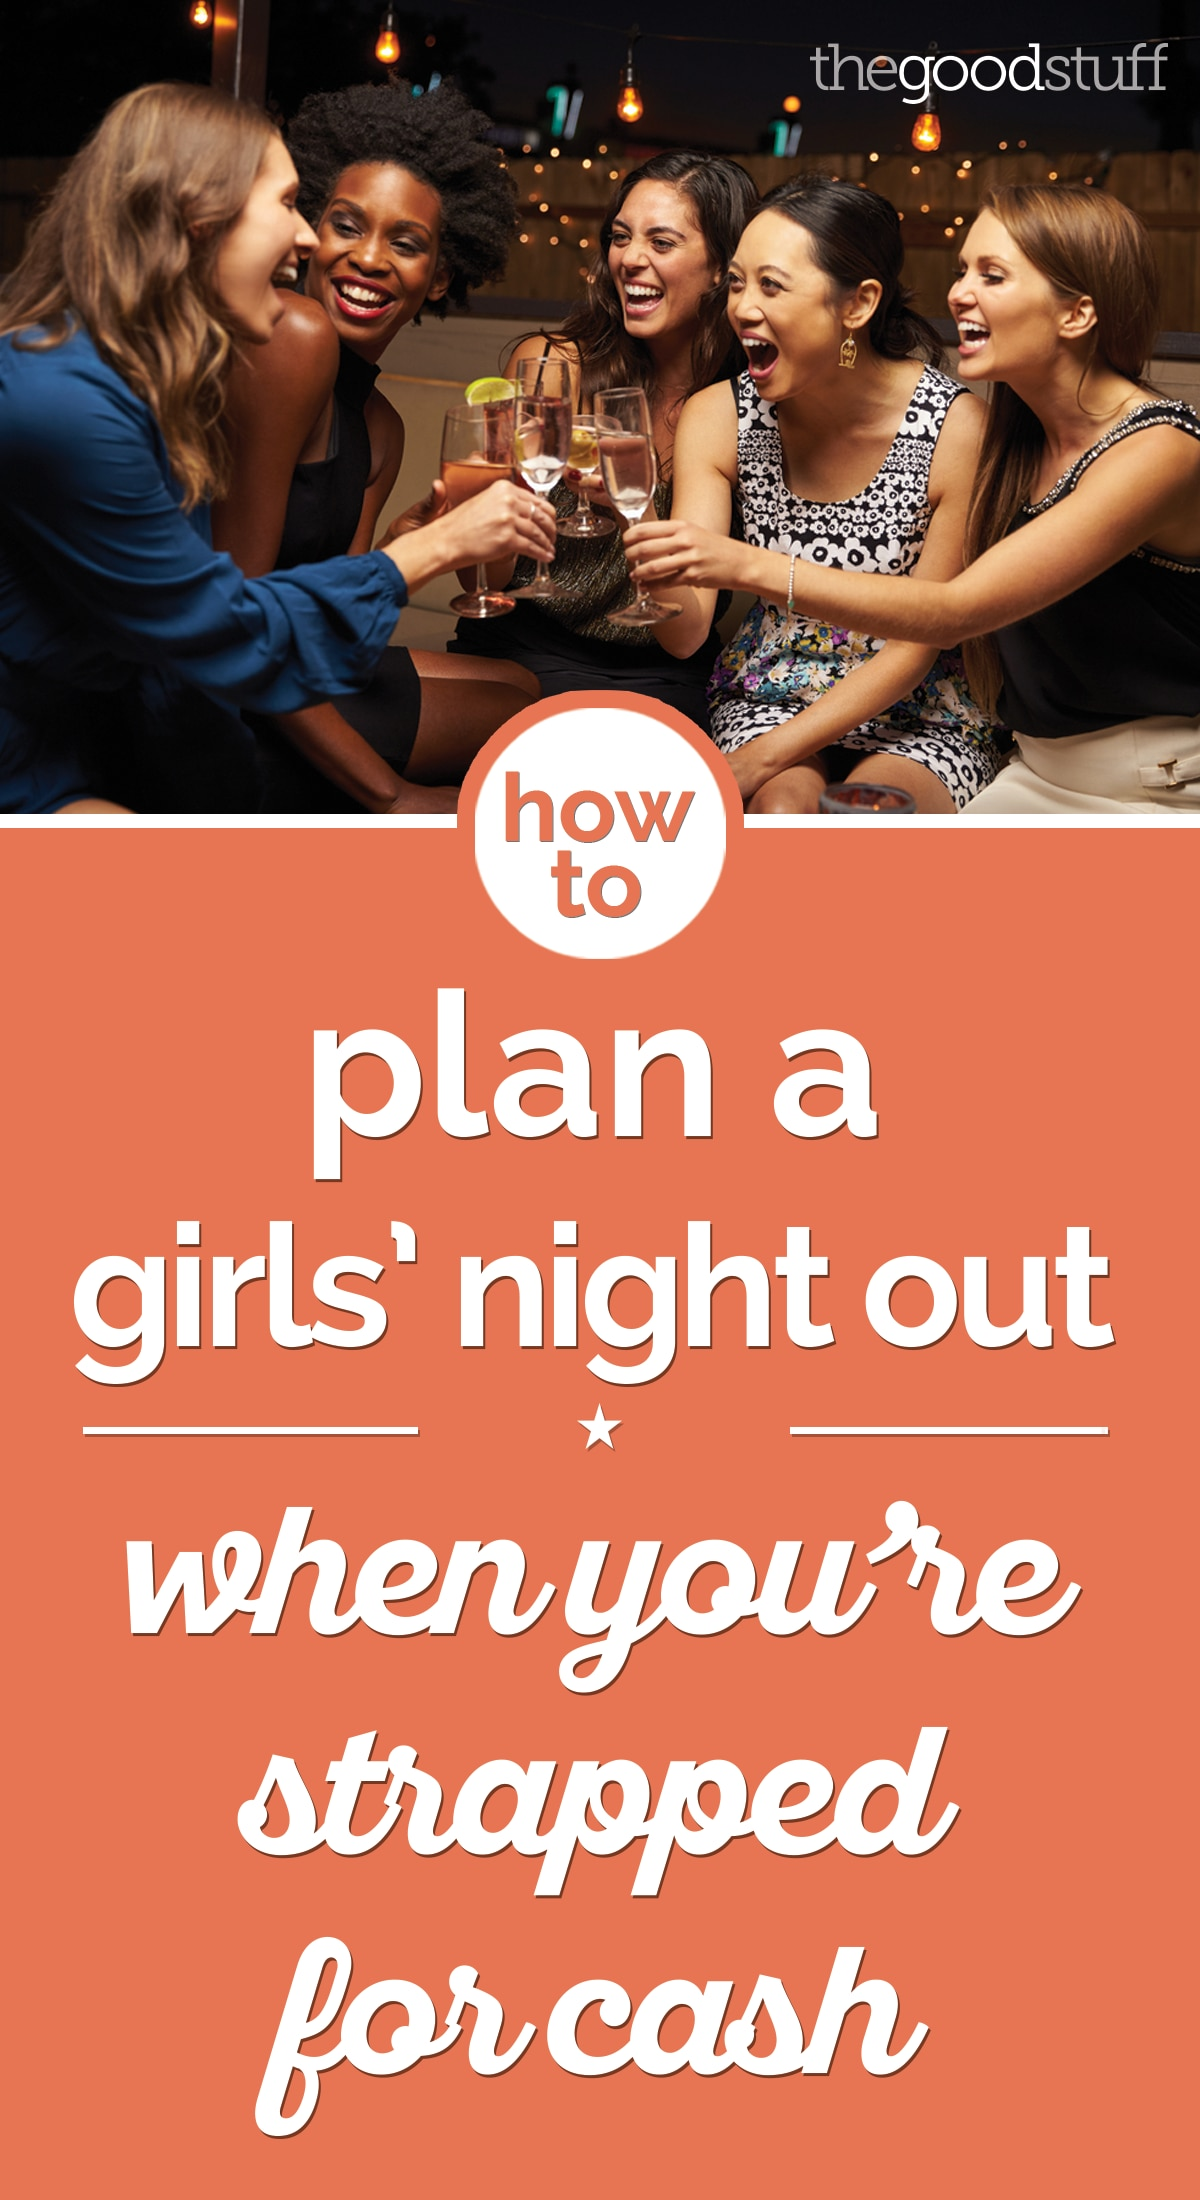 How to Plan a Girls' Night Out When You're Strapped for Cash | thegoodstuff